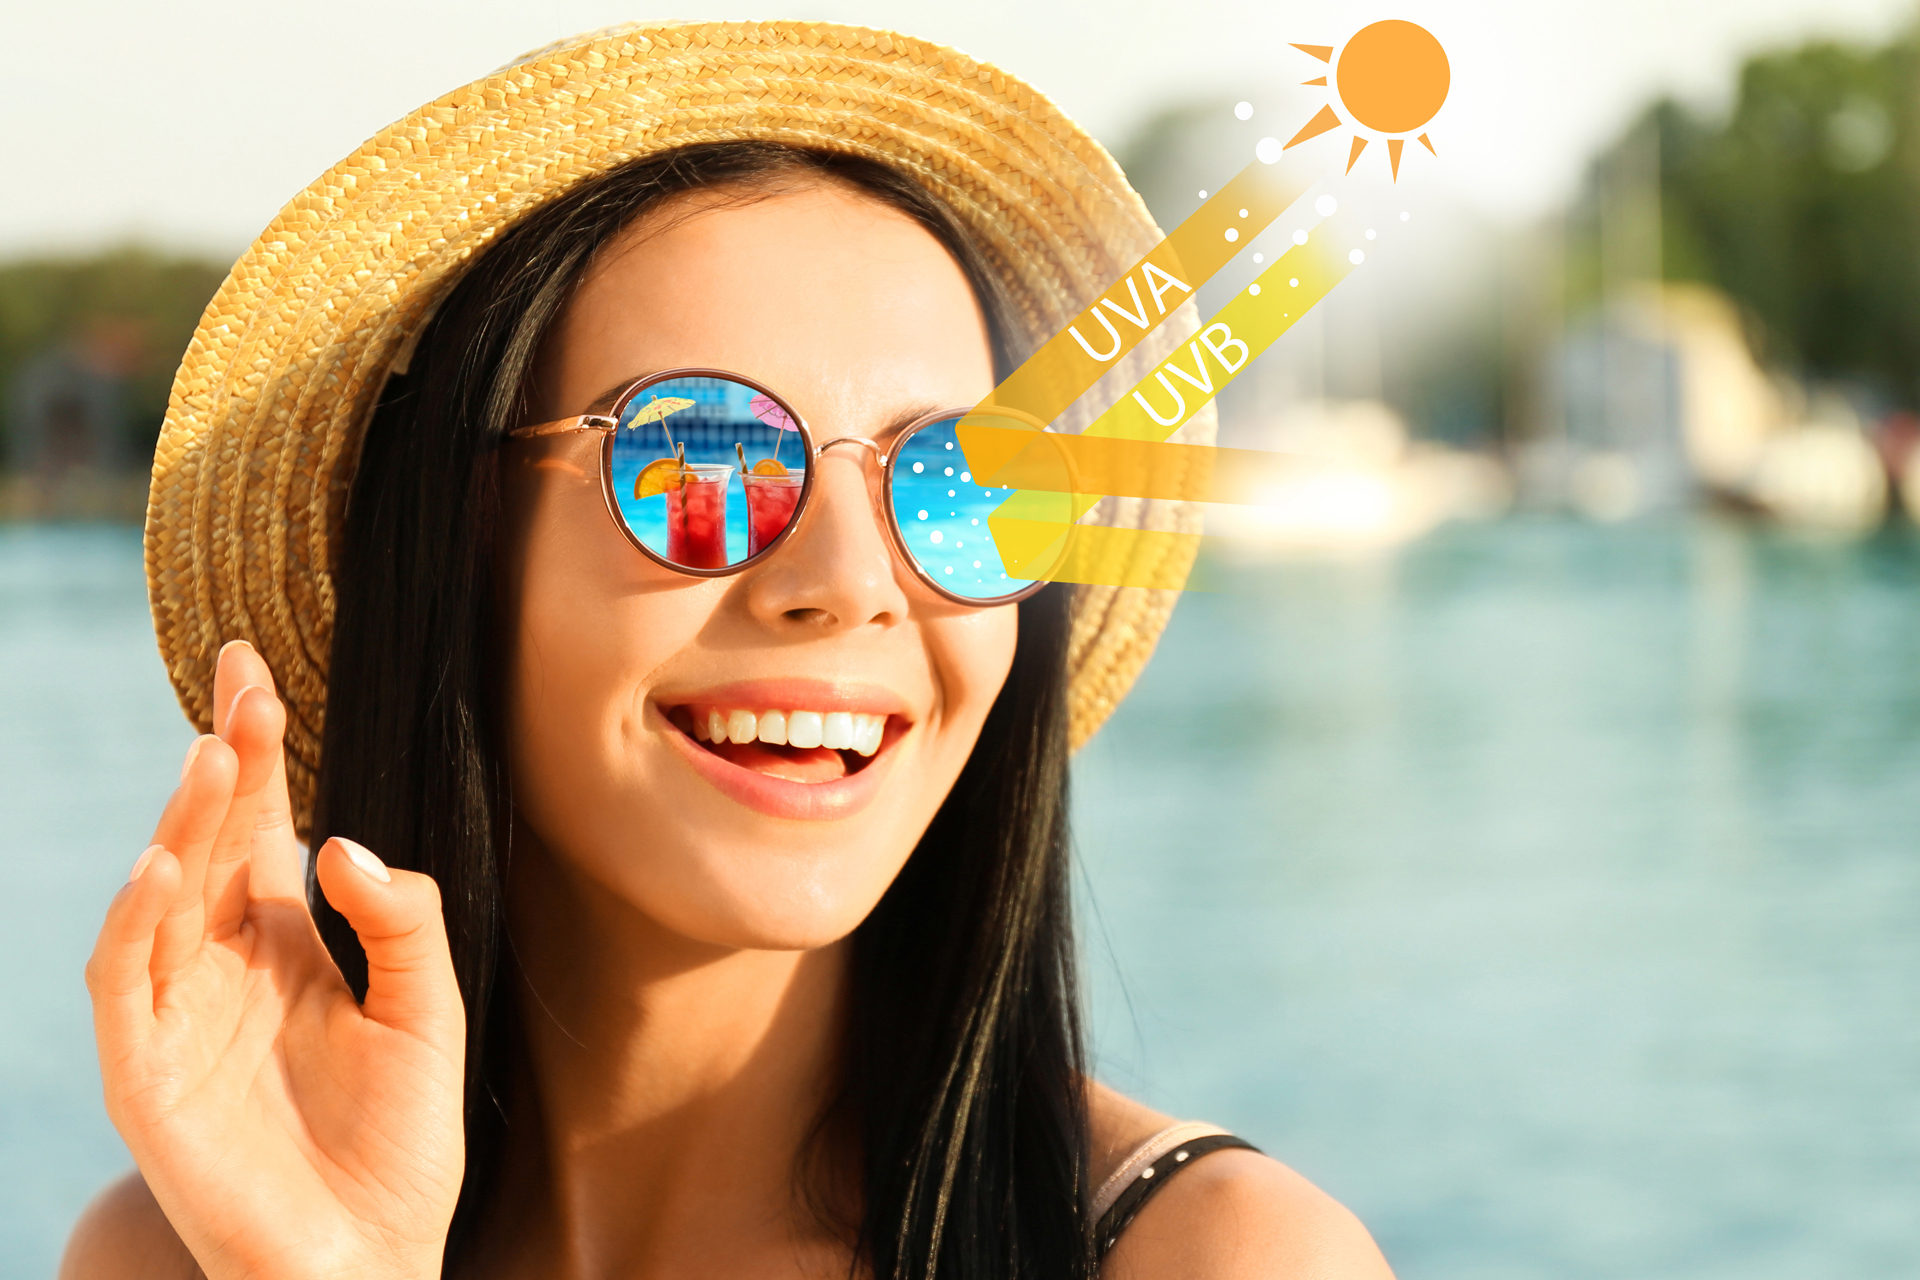 Protect Your Eyes with These UV Safety & Awareness Tips